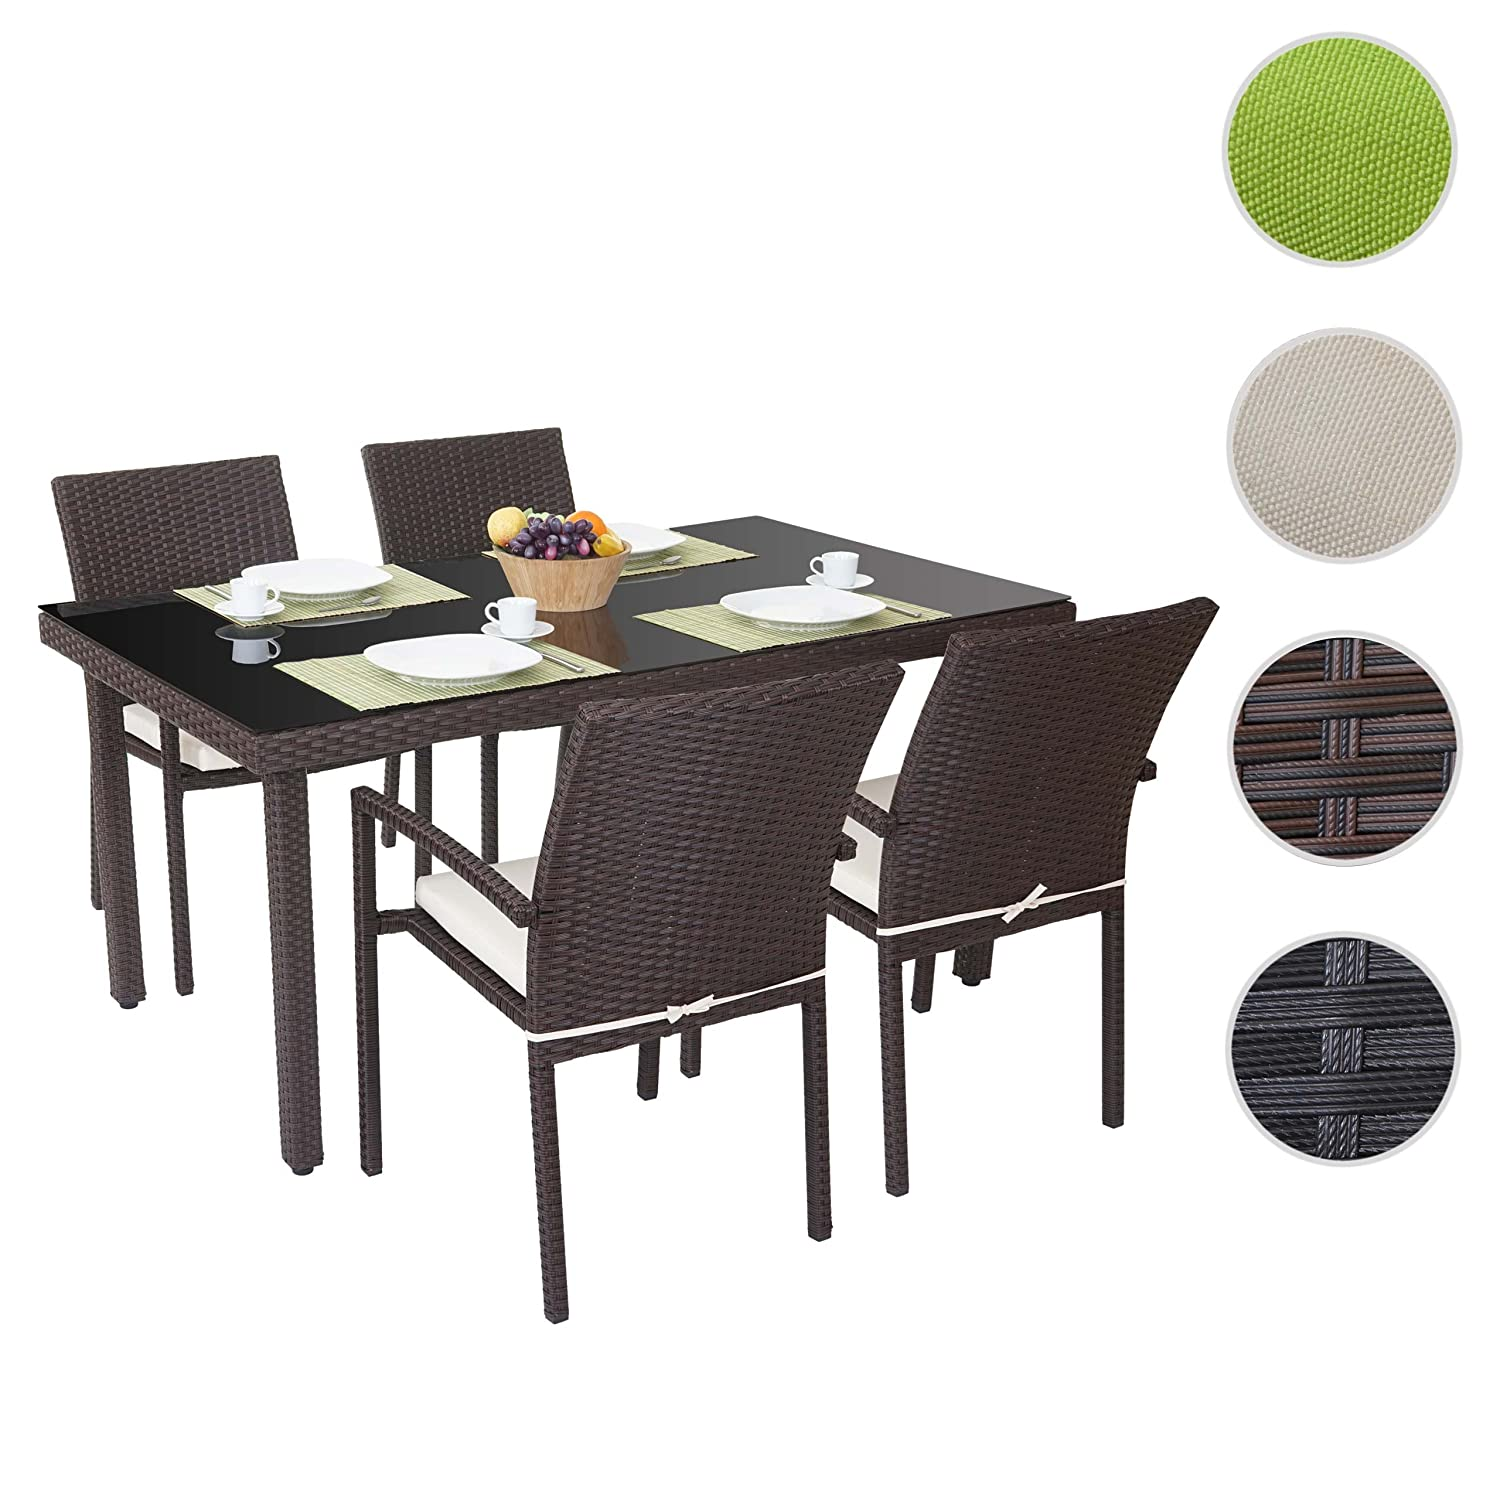 poly rattan garnitur cava garten sitzgruppe 4x stuhl tisch 160x90cm braun kissen creme. Black Bedroom Furniture Sets. Home Design Ideas